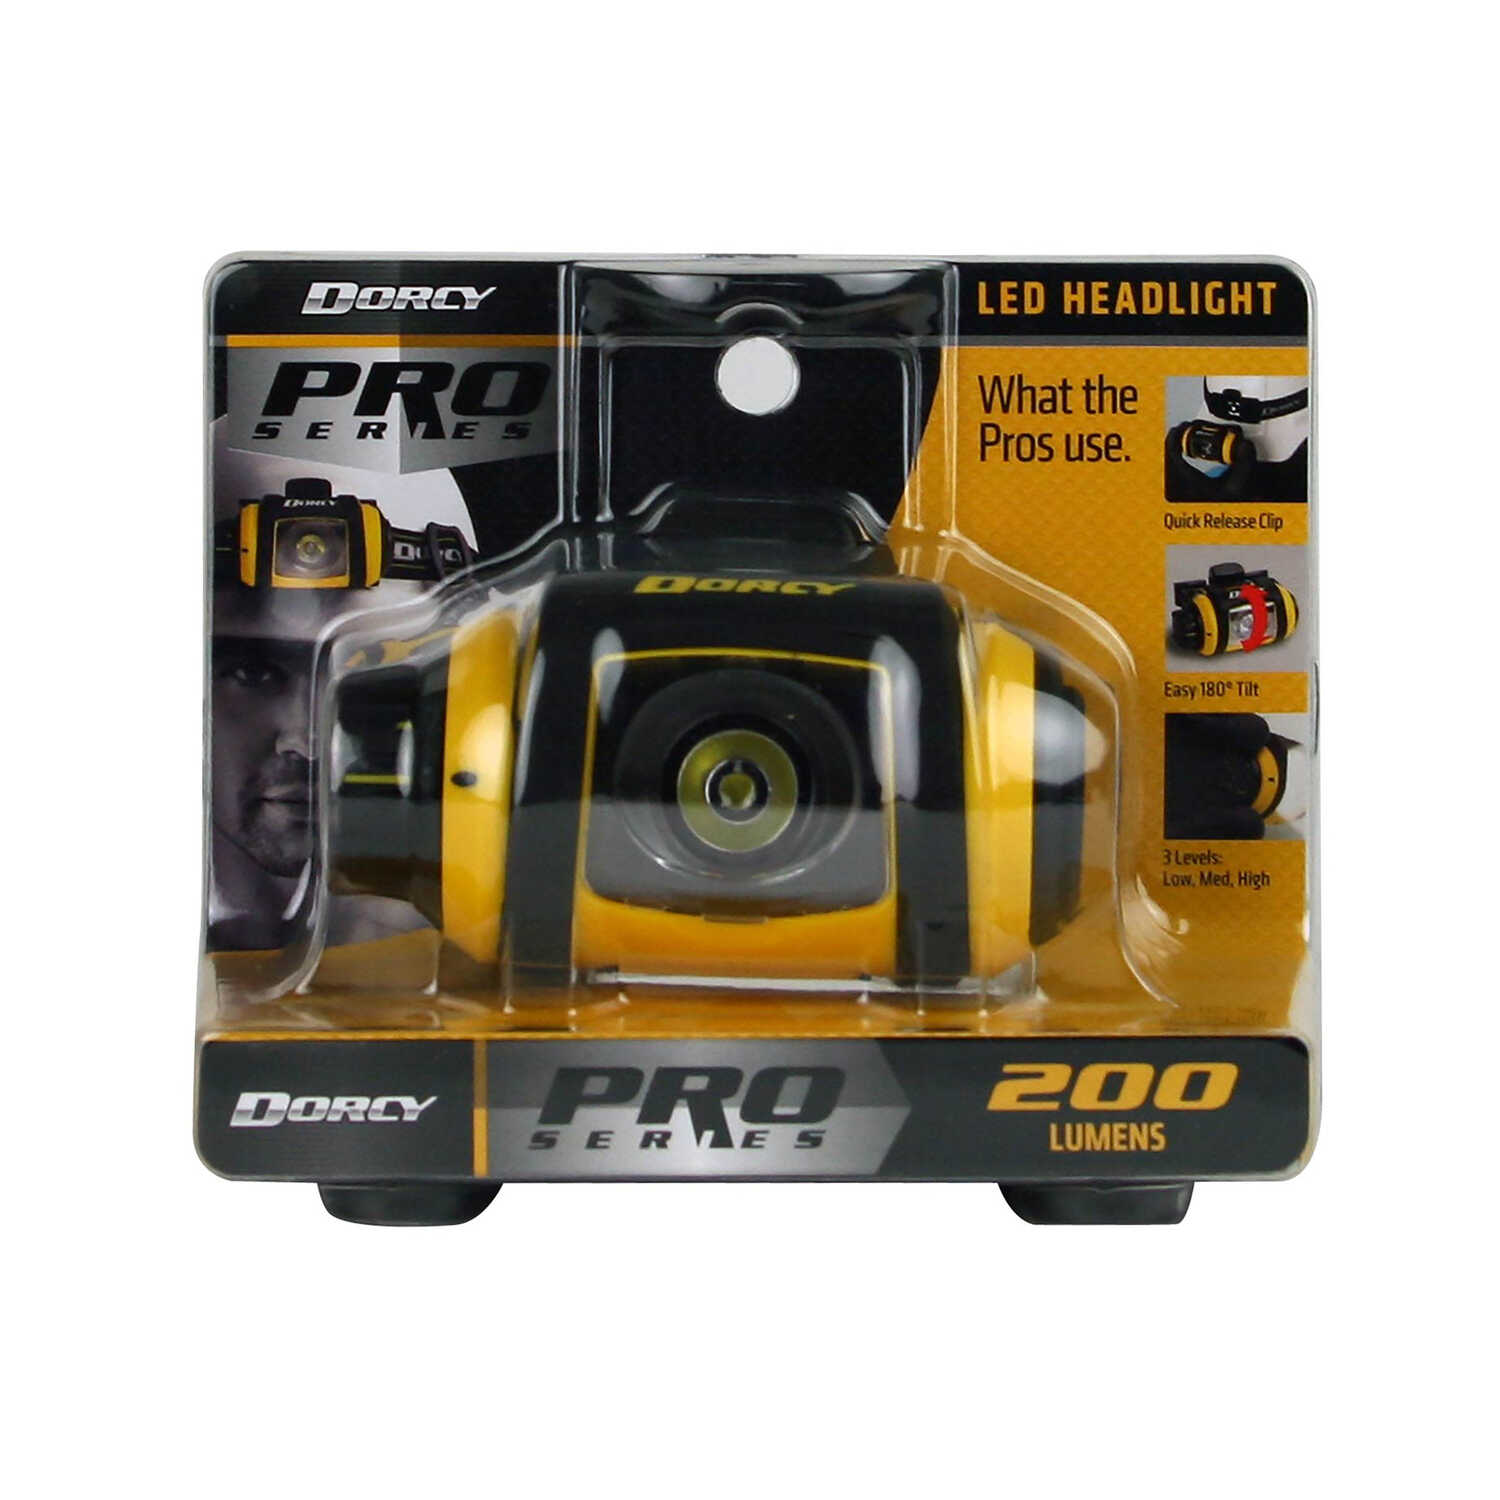 Dorcy  Pro Series  200 lumens Black & Yellow  LED  Headlight  AA